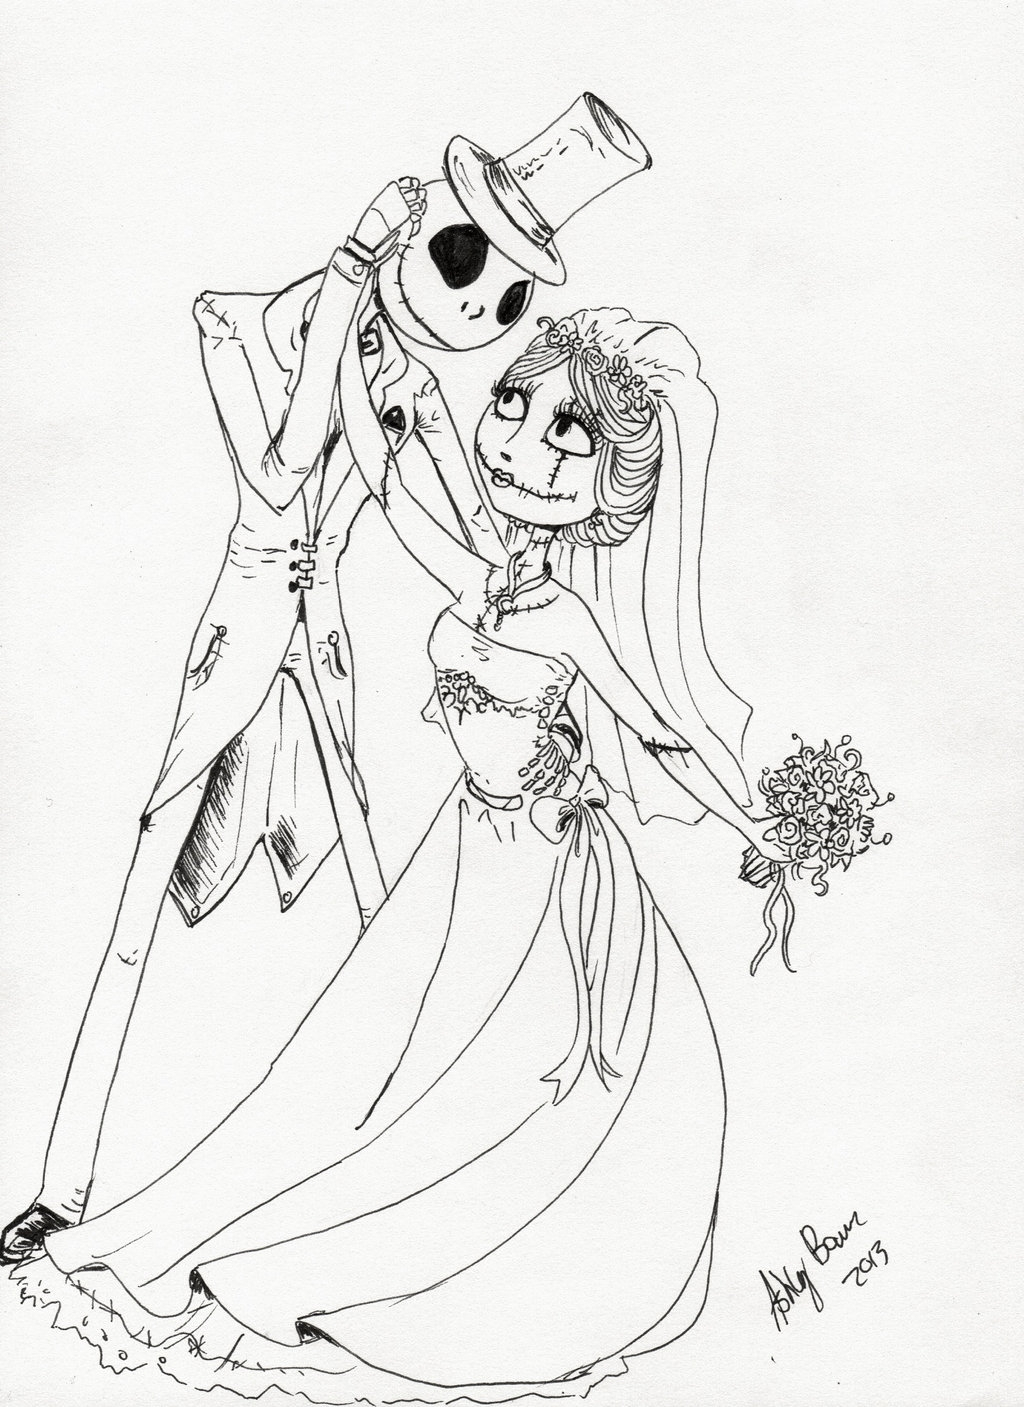 Jack and Sally Coloring Pages - Jack and Sally Love by Angel2489 On Deviantart